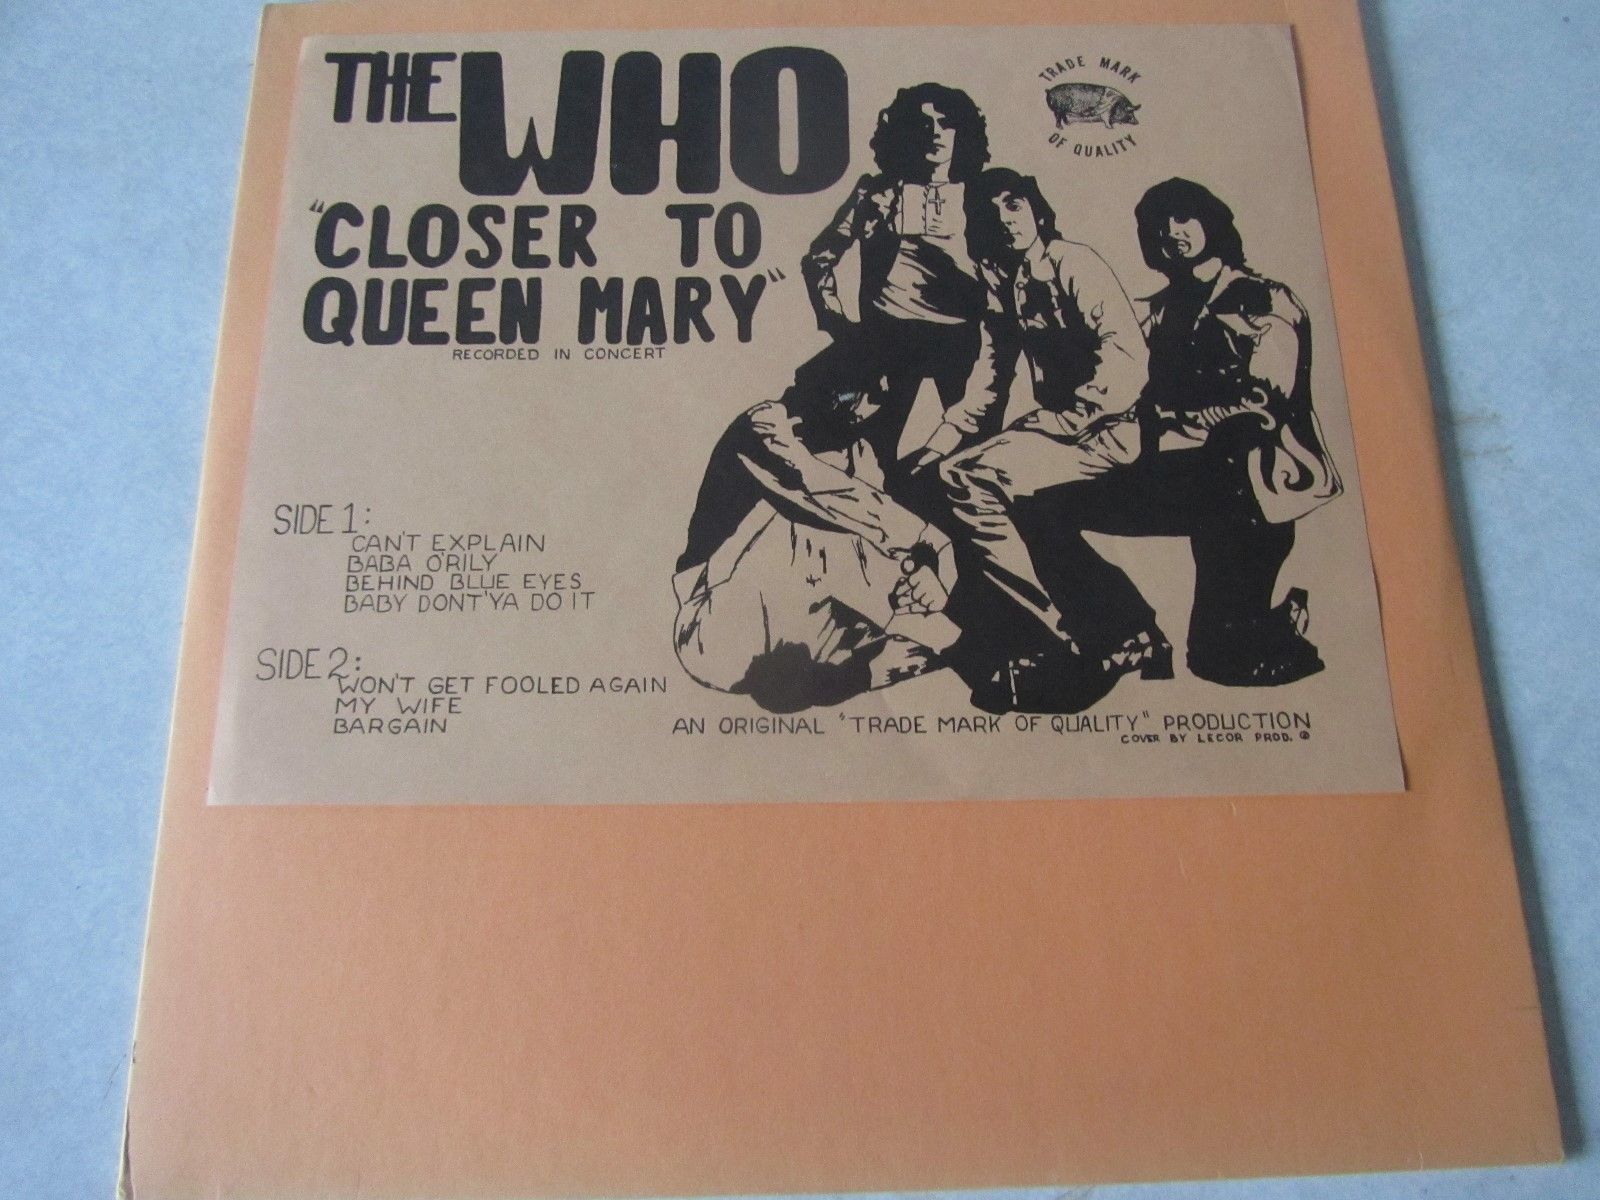 The Who Closer to the Queen Mary CV Tmoq 1Lp Townshend Moon Entwistle Daltrey